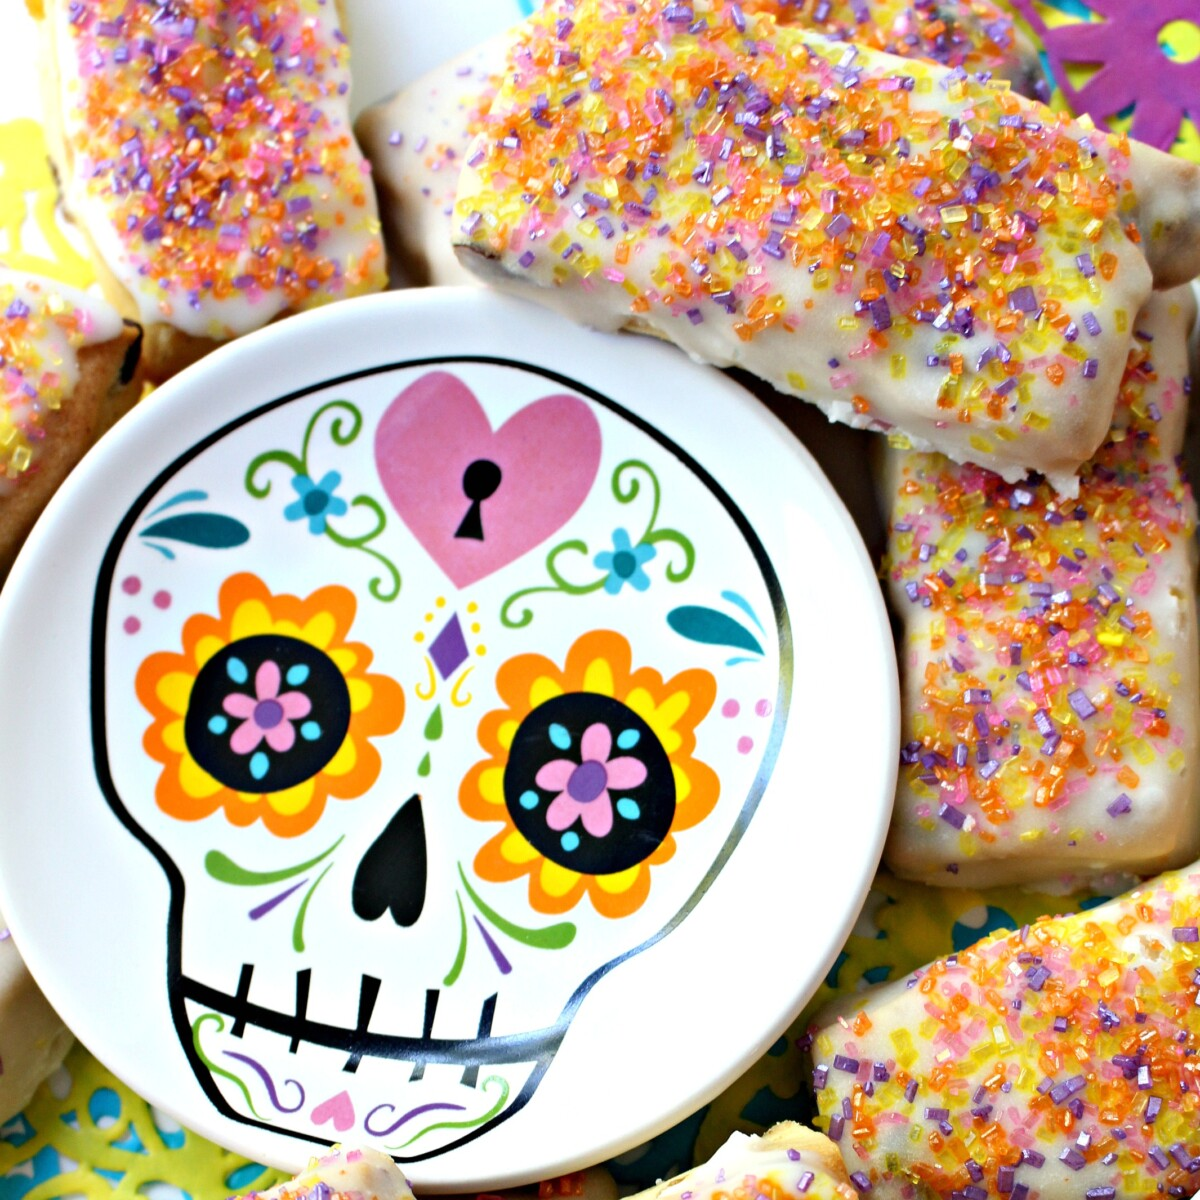 Pabassinas cookies with a calavera skull plate.